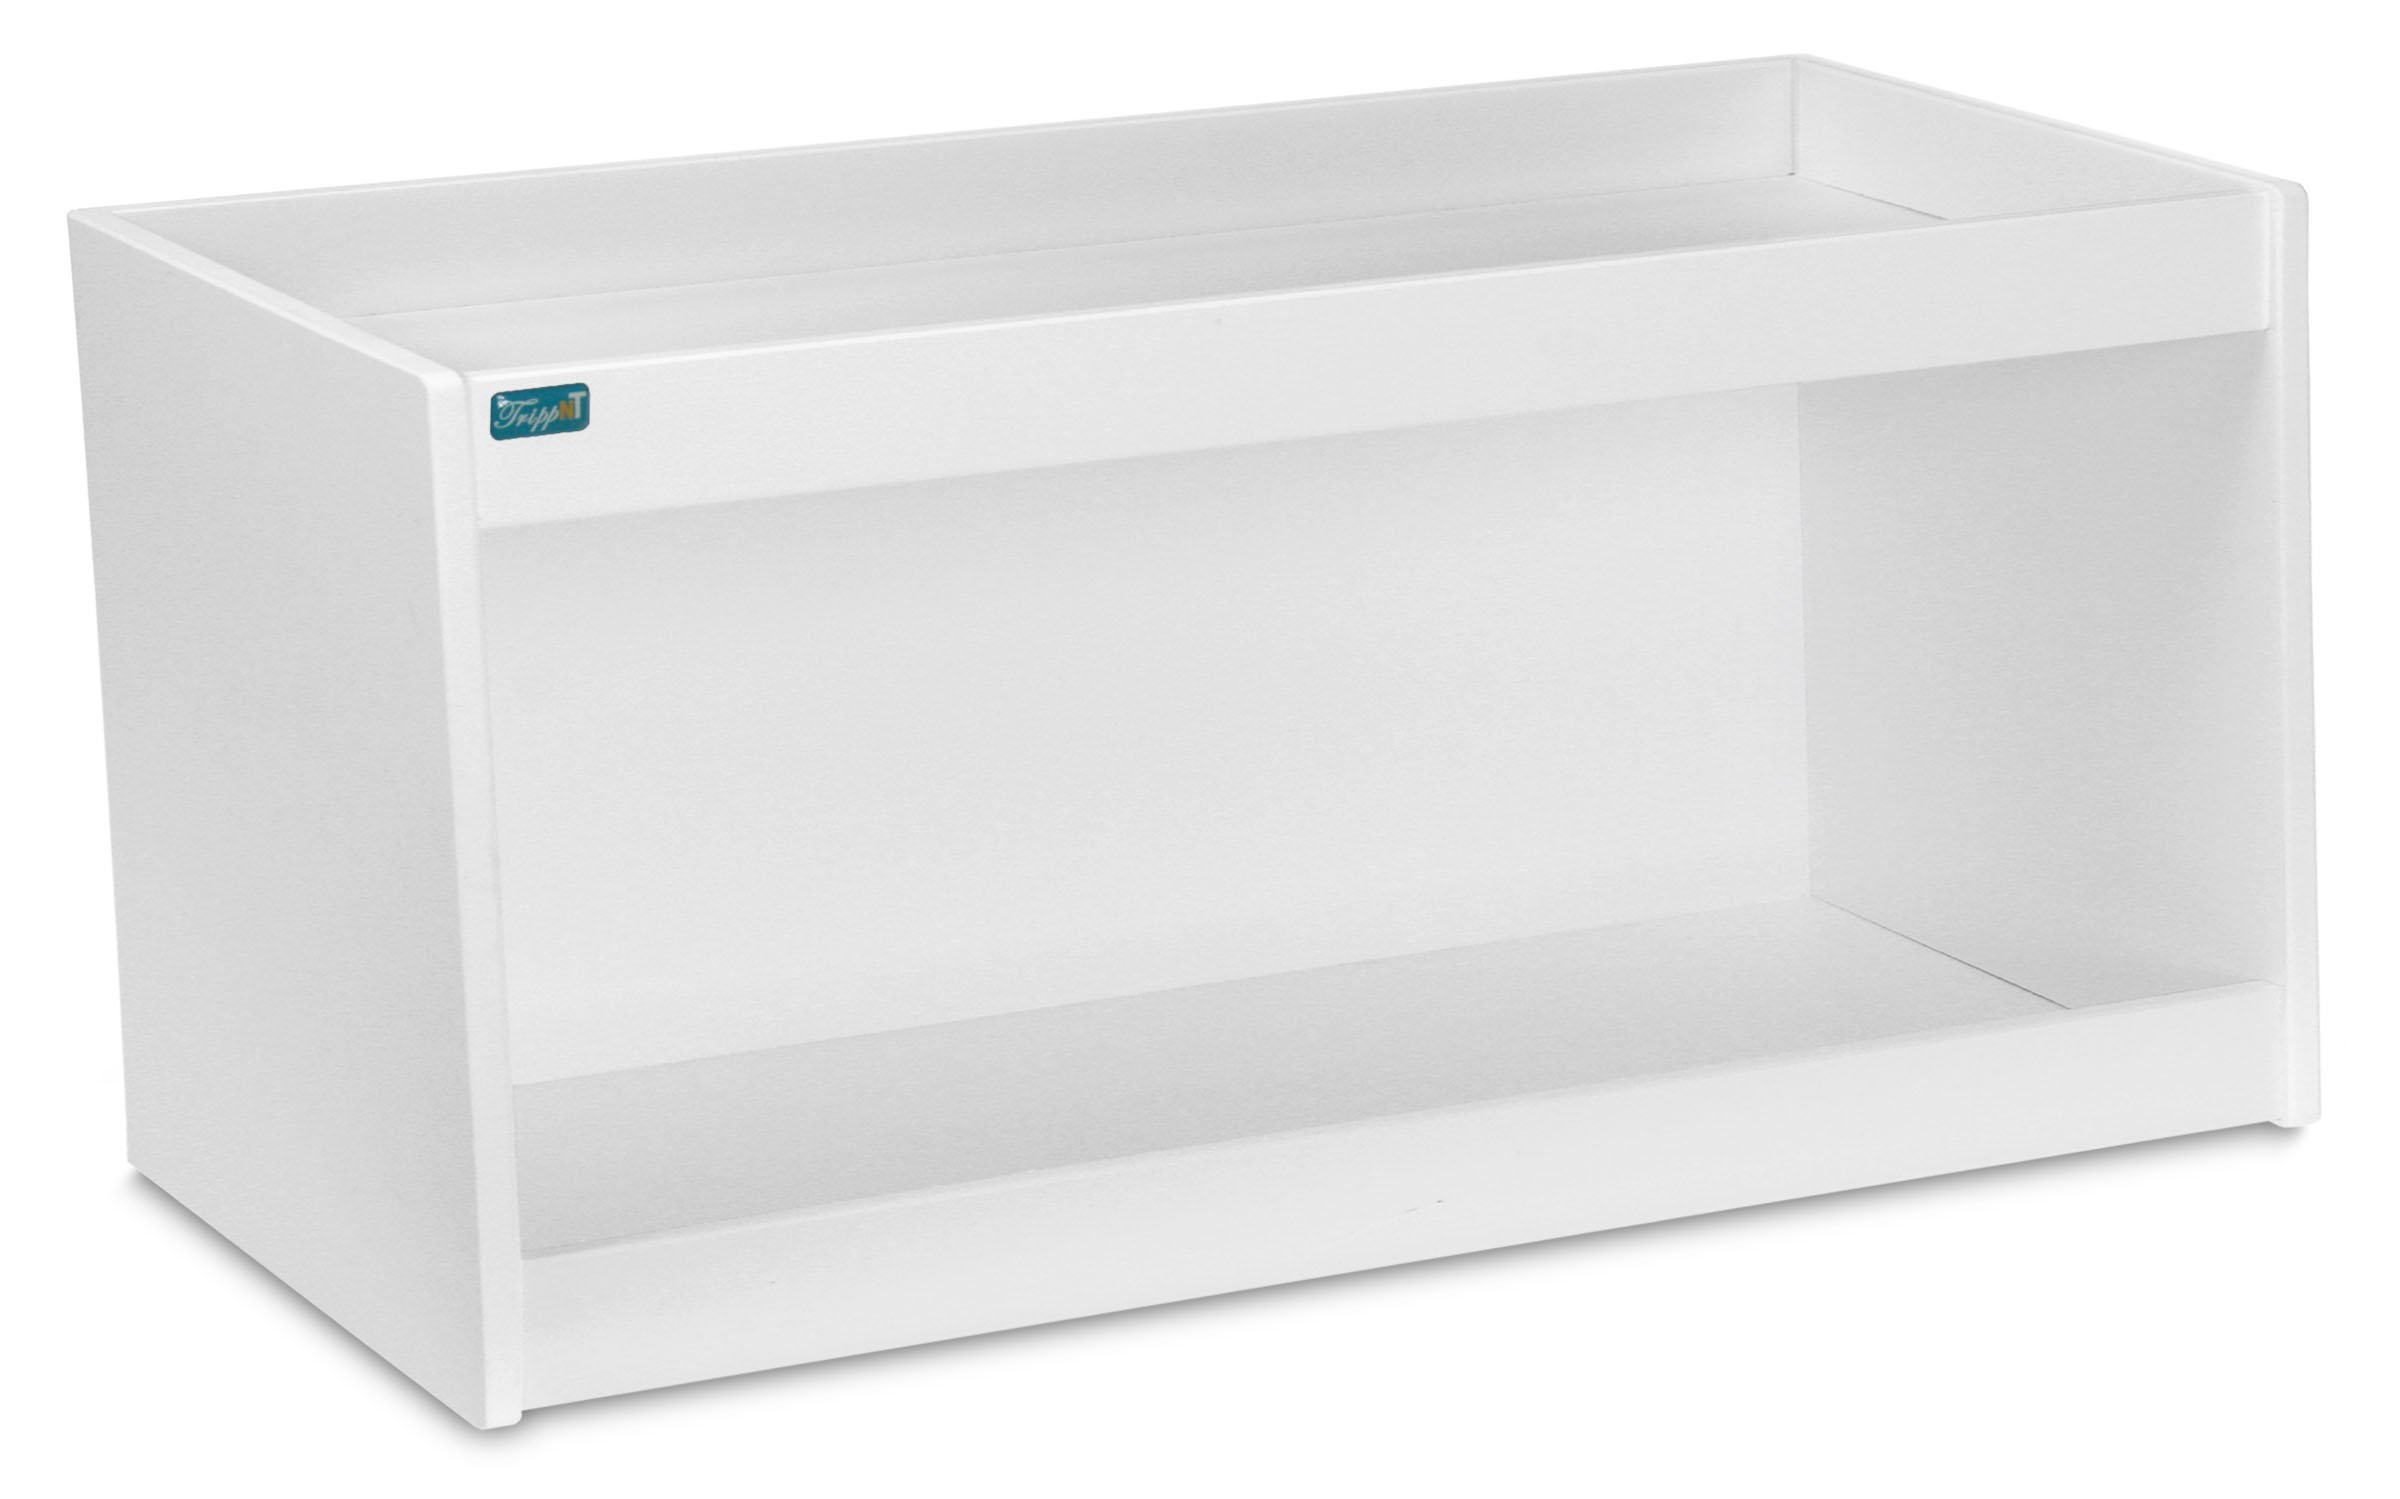 TrippNT 50487 PVC Straight Double Safety Shelves, 24'' Width x 10'' Height x 7'' Depth, White